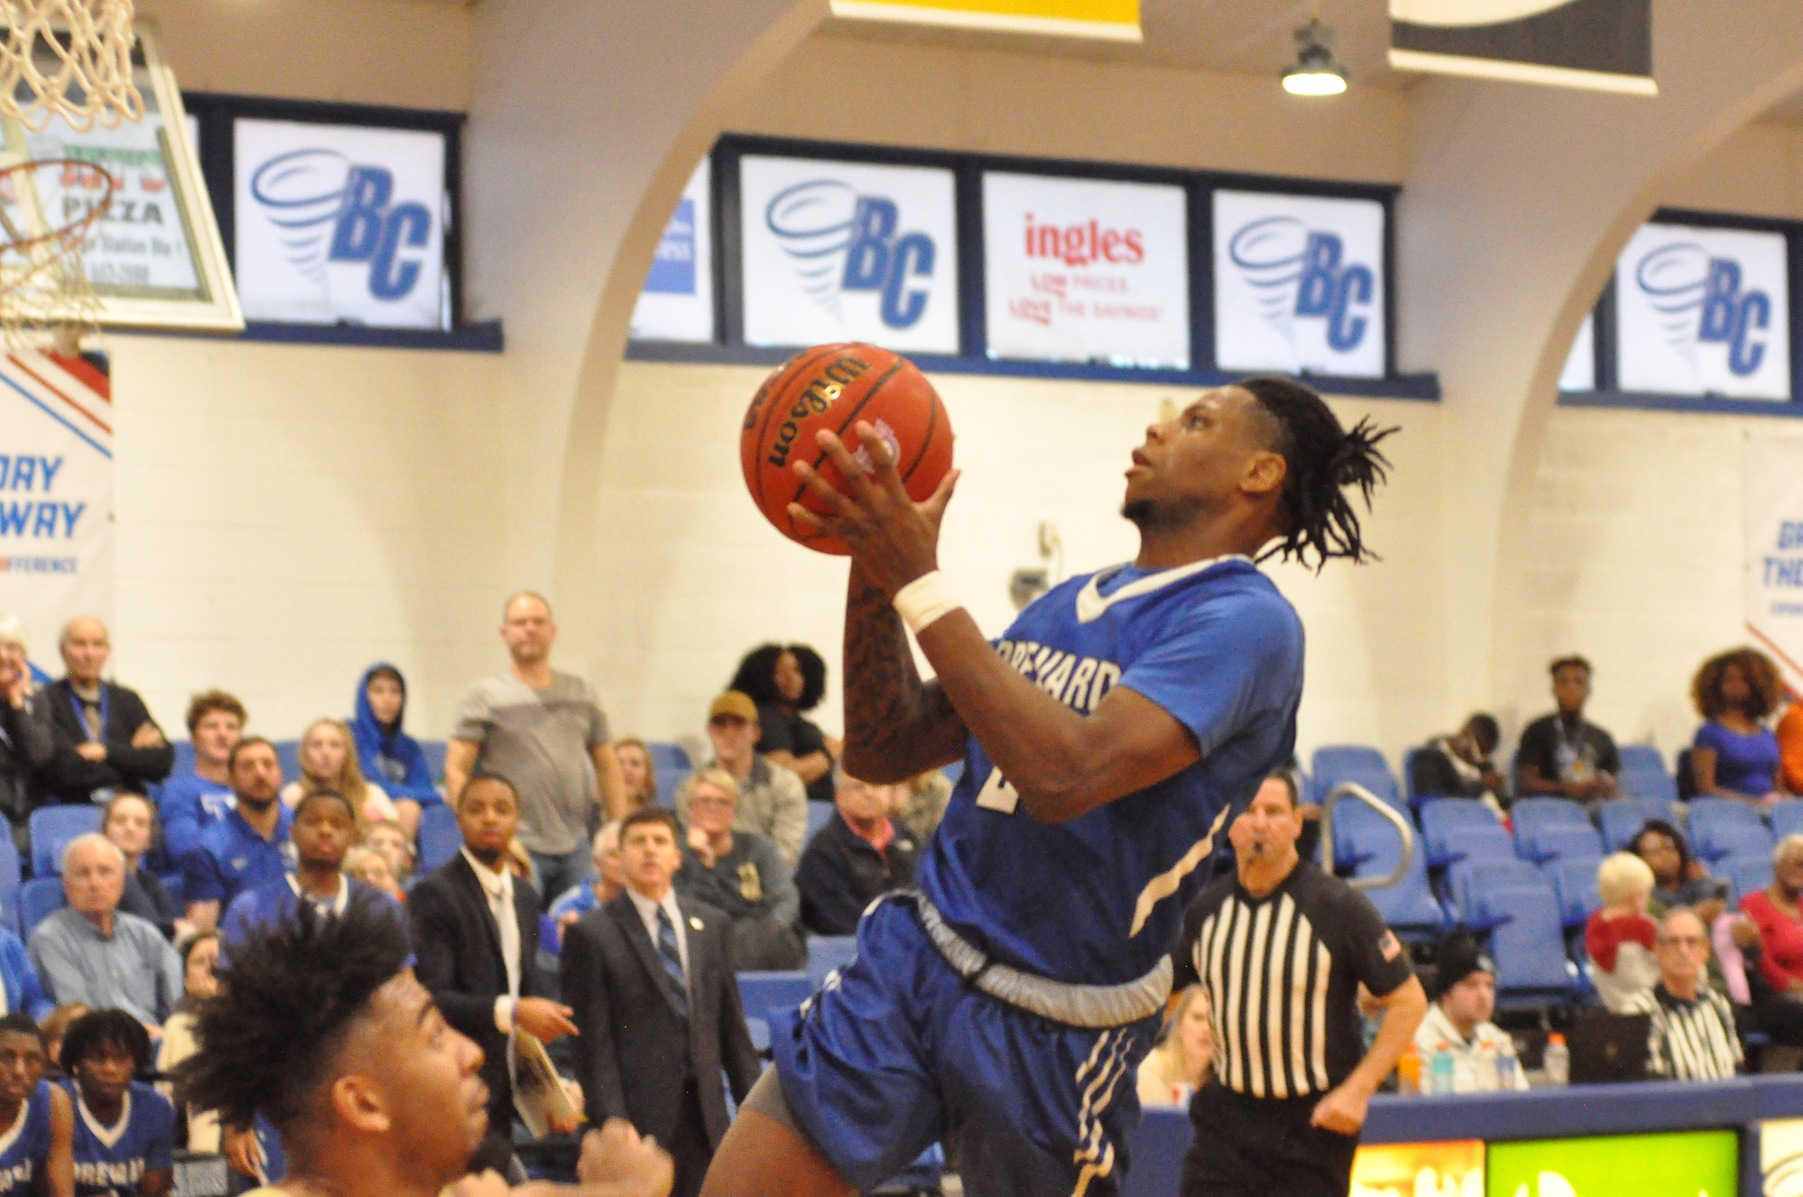 Senior guard Demari Hopper in action at The Bosh (Photo courtesy of Tommy Moss).